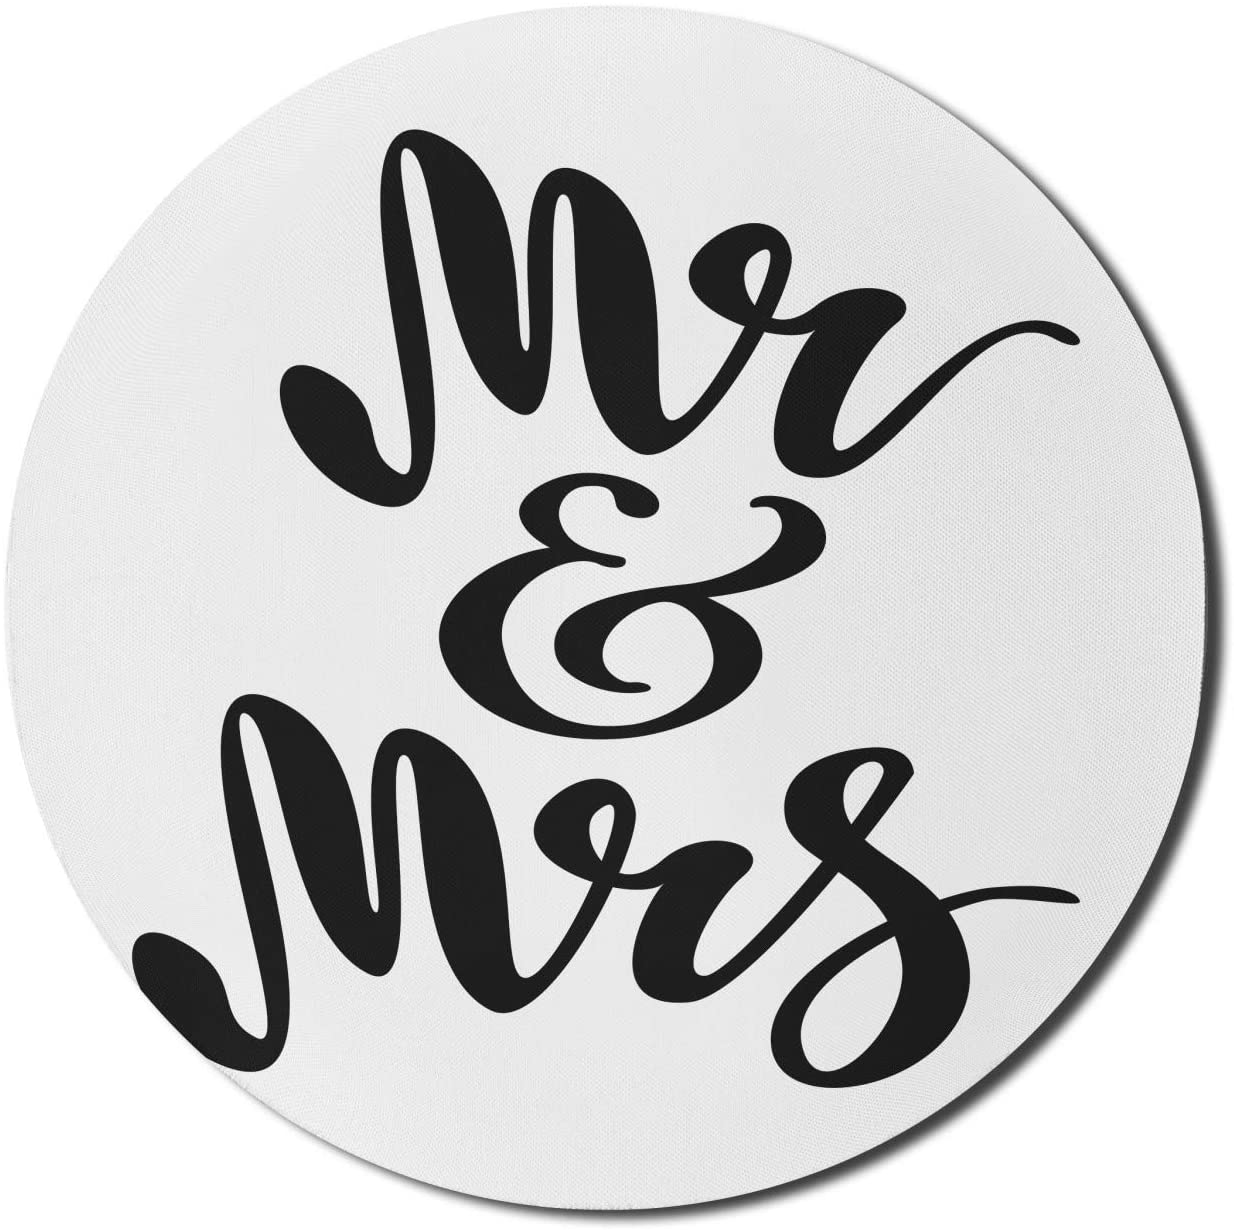 Ambesonne Mr Mrs Mouse Pad for Computers, Hand Drawn Brush Pen Lettering Design Curved and Swirled Lines Monochrome Words, Round Non-Slip Thick Rubber Modern Gaming Mousepad, 8